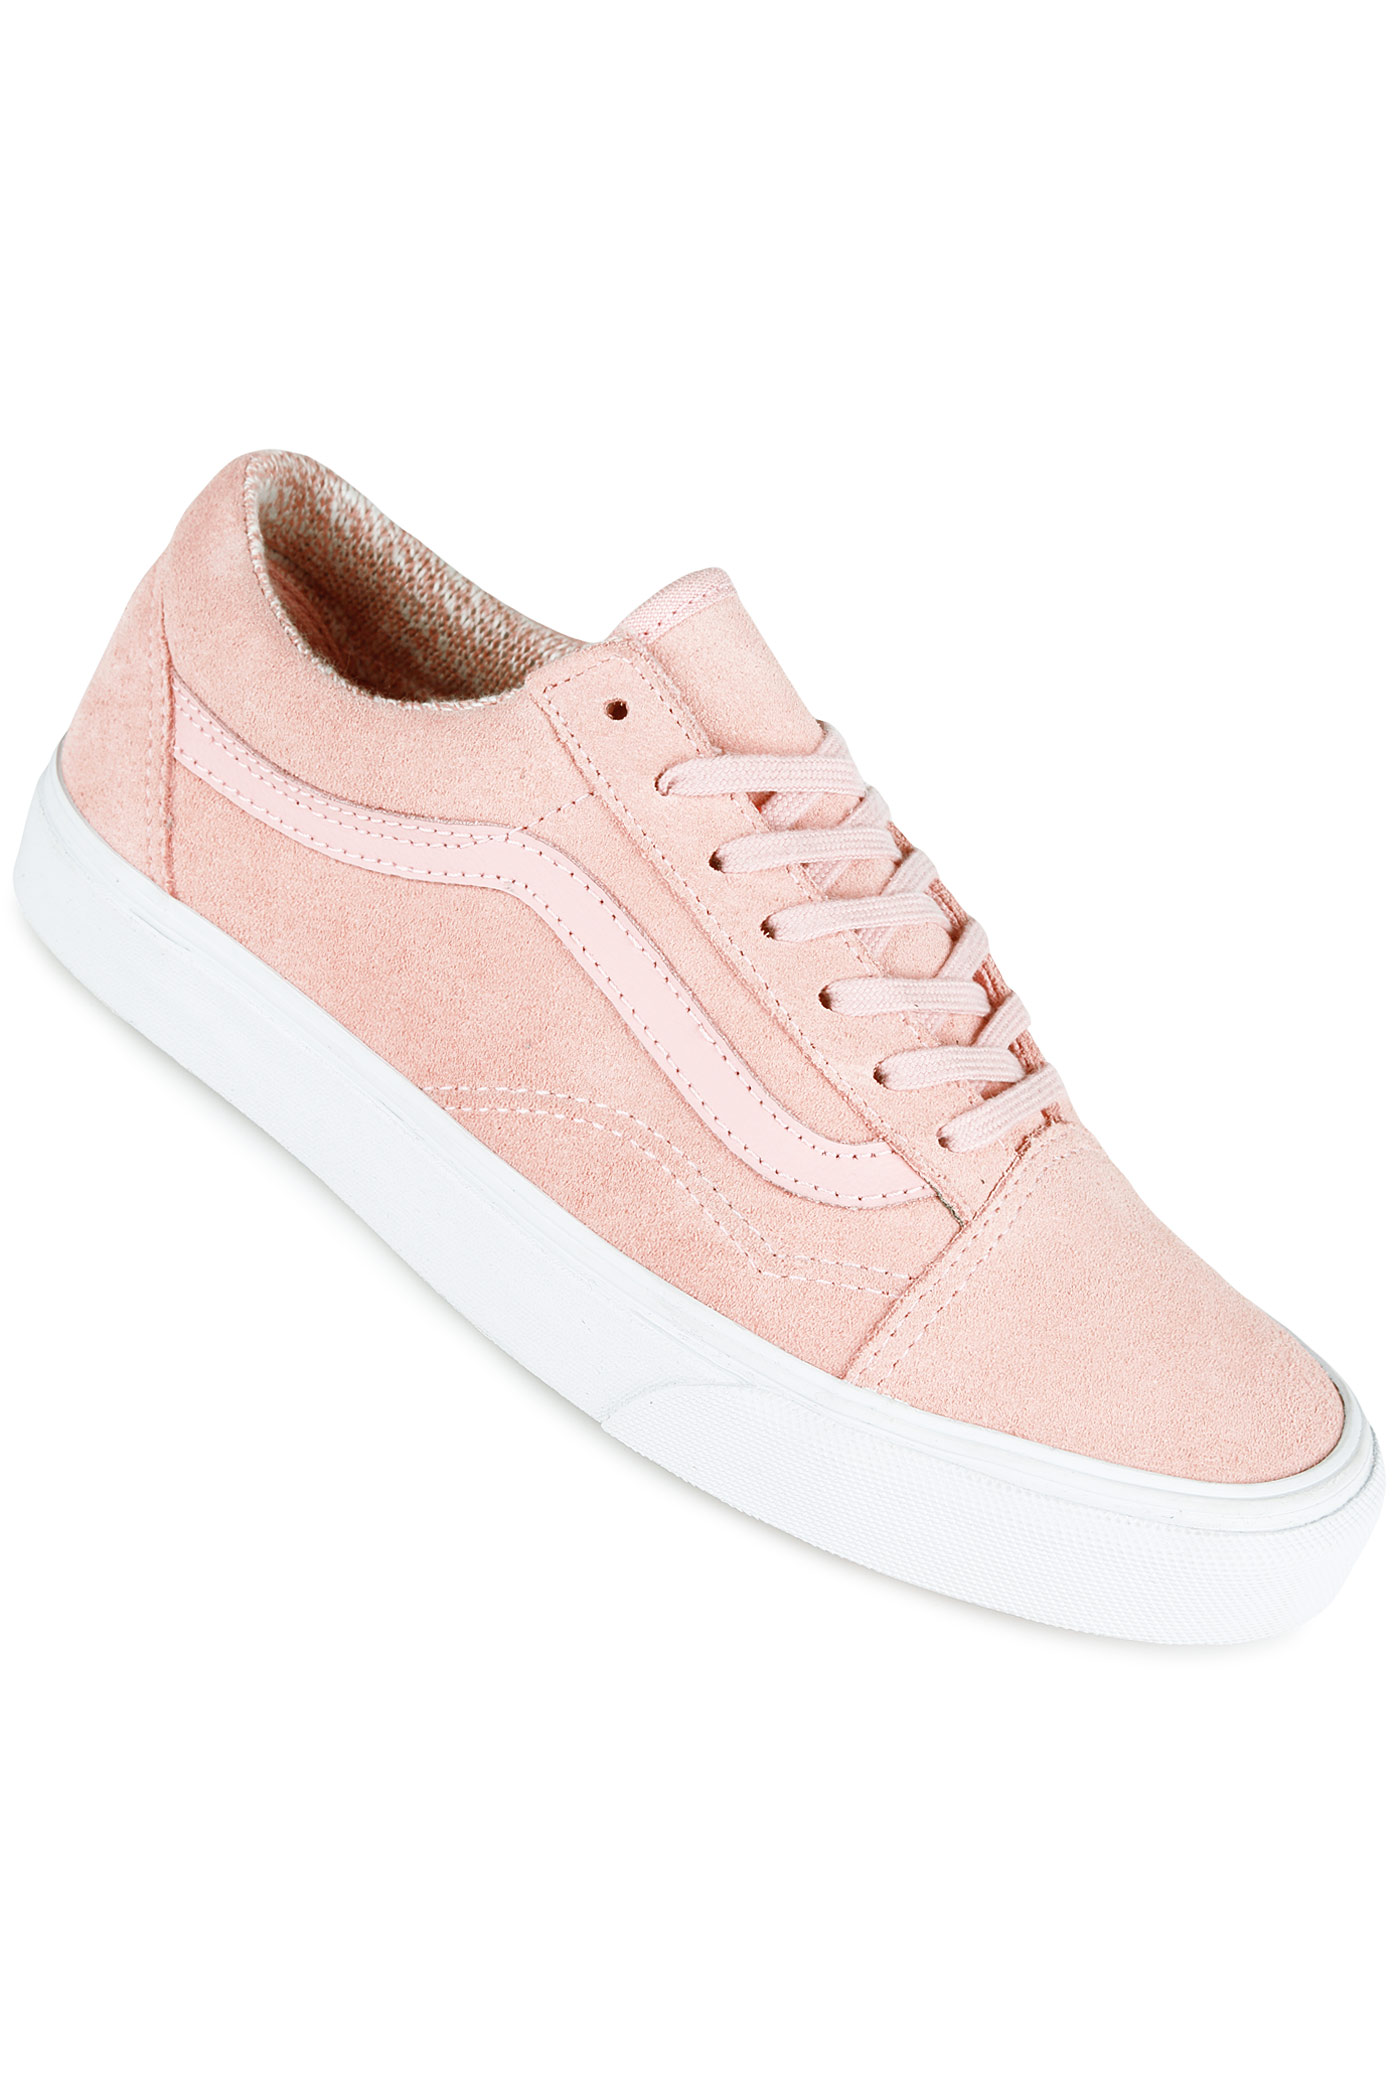 vans old school damen rosa